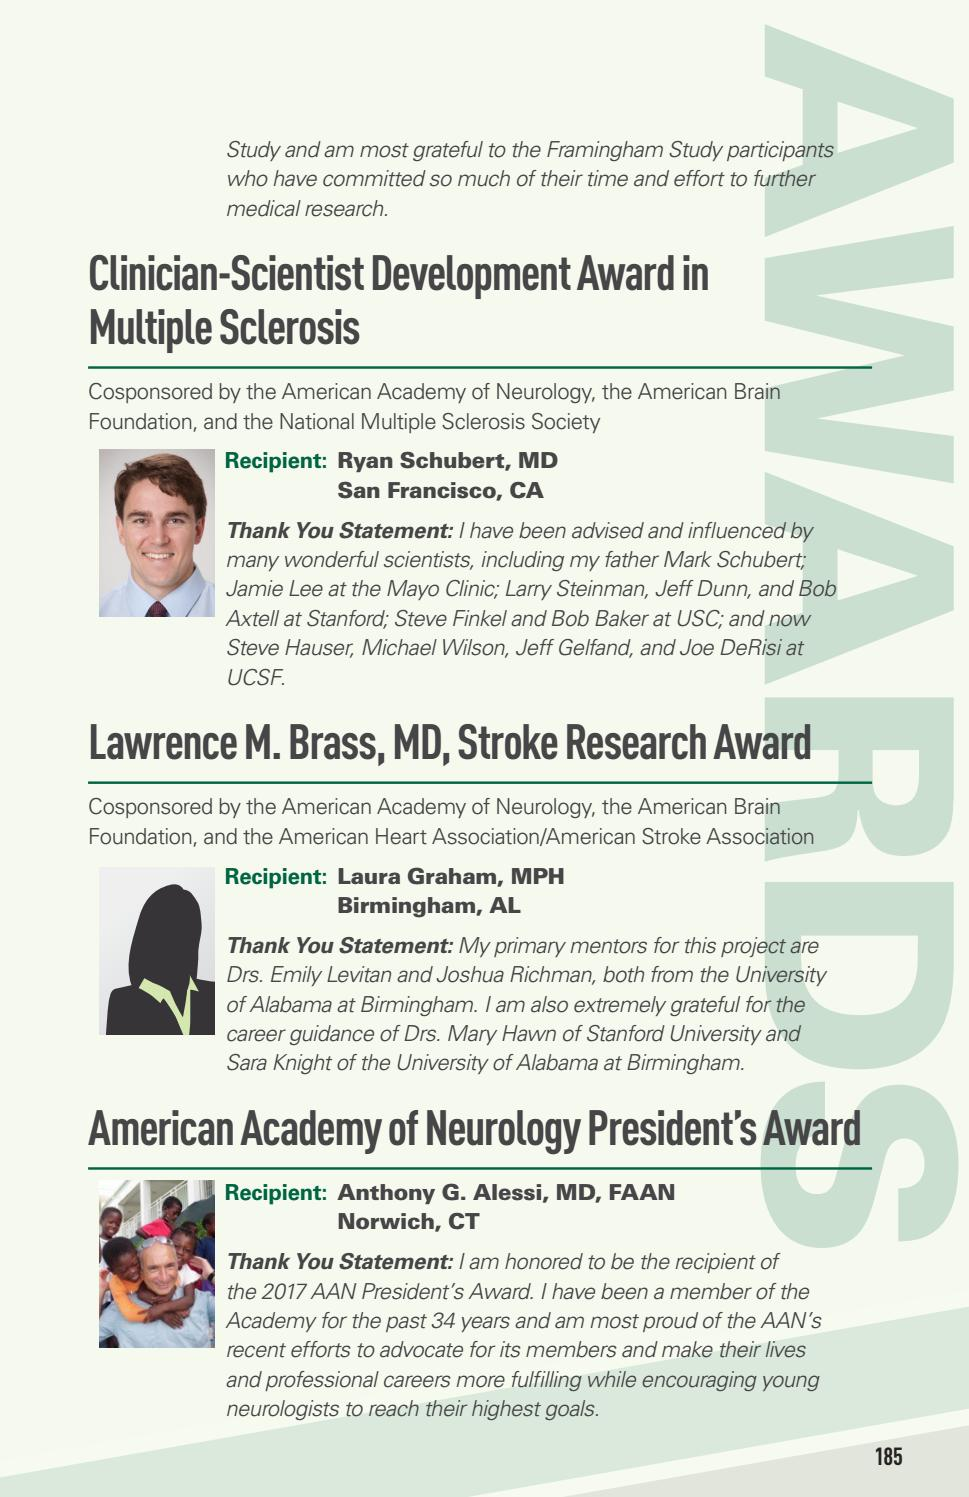 2017 Annual Meeting Awards Listing by American Academy of Neurology